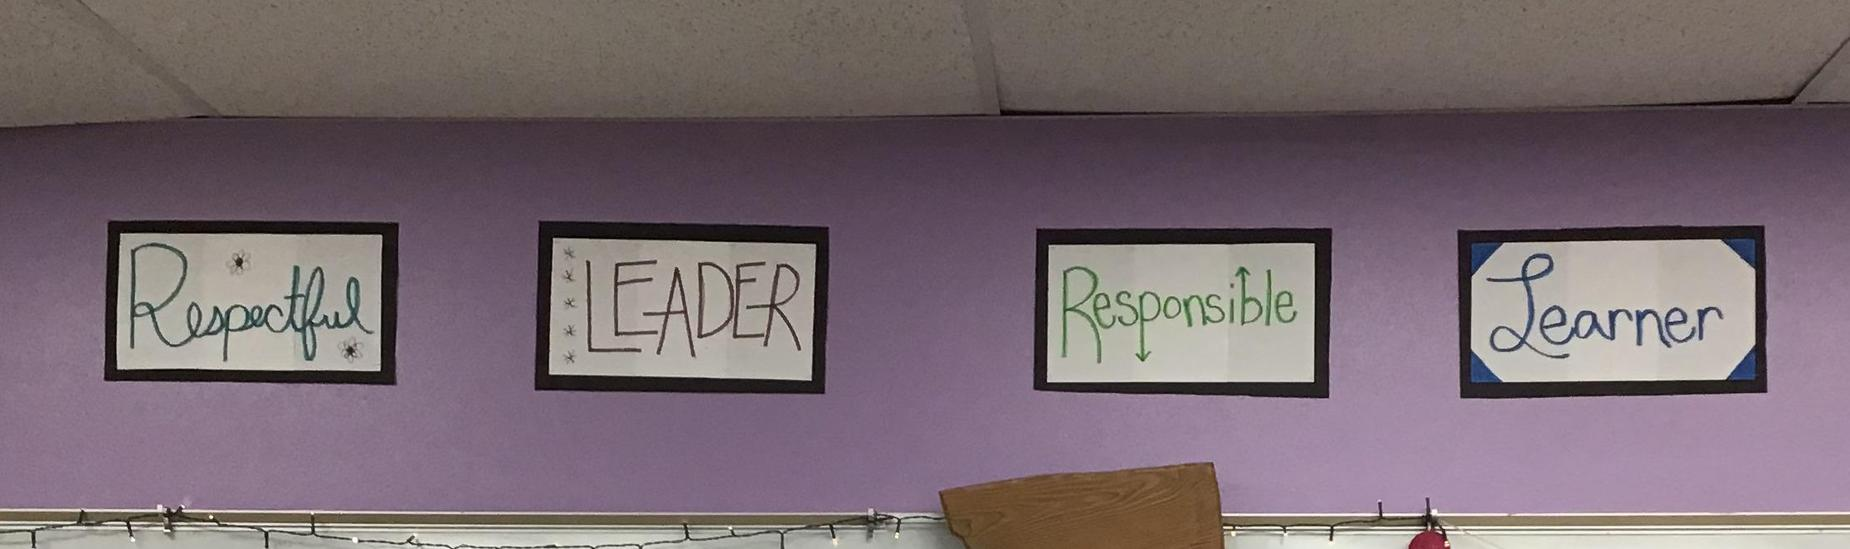 Signs on a classroom wall that read: Respectful Leader Responsible Learner